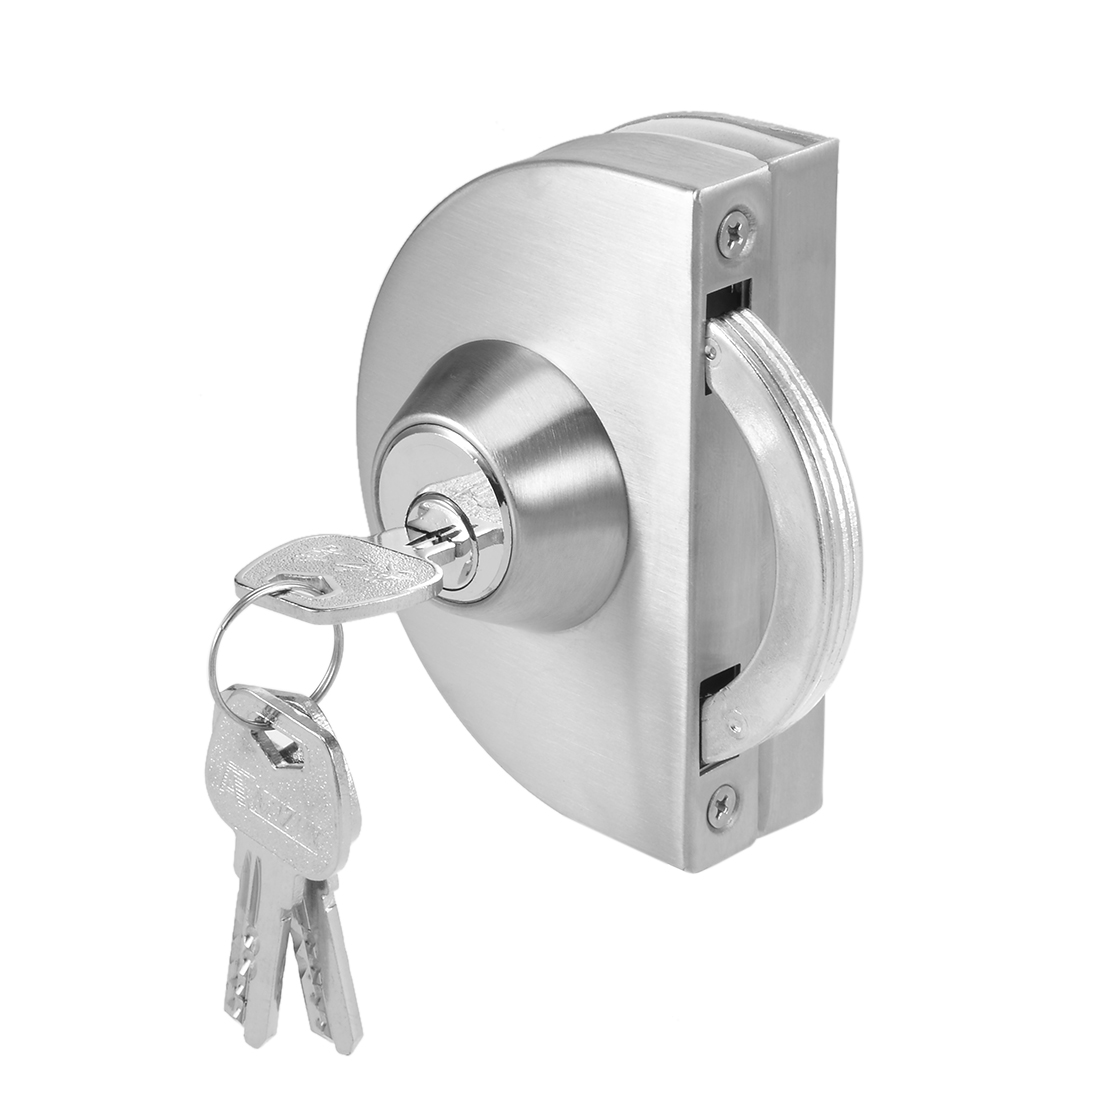 10mm-12mm Glass Door Single Latch Lock Stainless Steel Brushed Finish